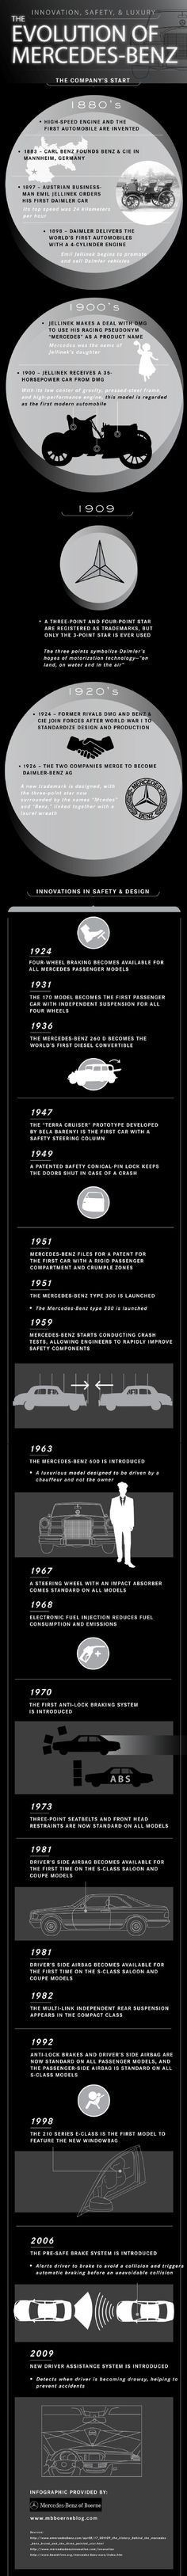 """The first vehicles with the name """"Mercedes-Benz"""" were produced in 1926. For almost a century, these cars have been fan favorites. This infographic from a Mercedes dealer in San Antonio shows the history and evolution of Mercedes-Benz. Source: http://www.mbboerneblog.com/679693/2013/04/11/innovation-safety-and-luxury-the-evolution-of-mercedes-benz-infographic.html"""